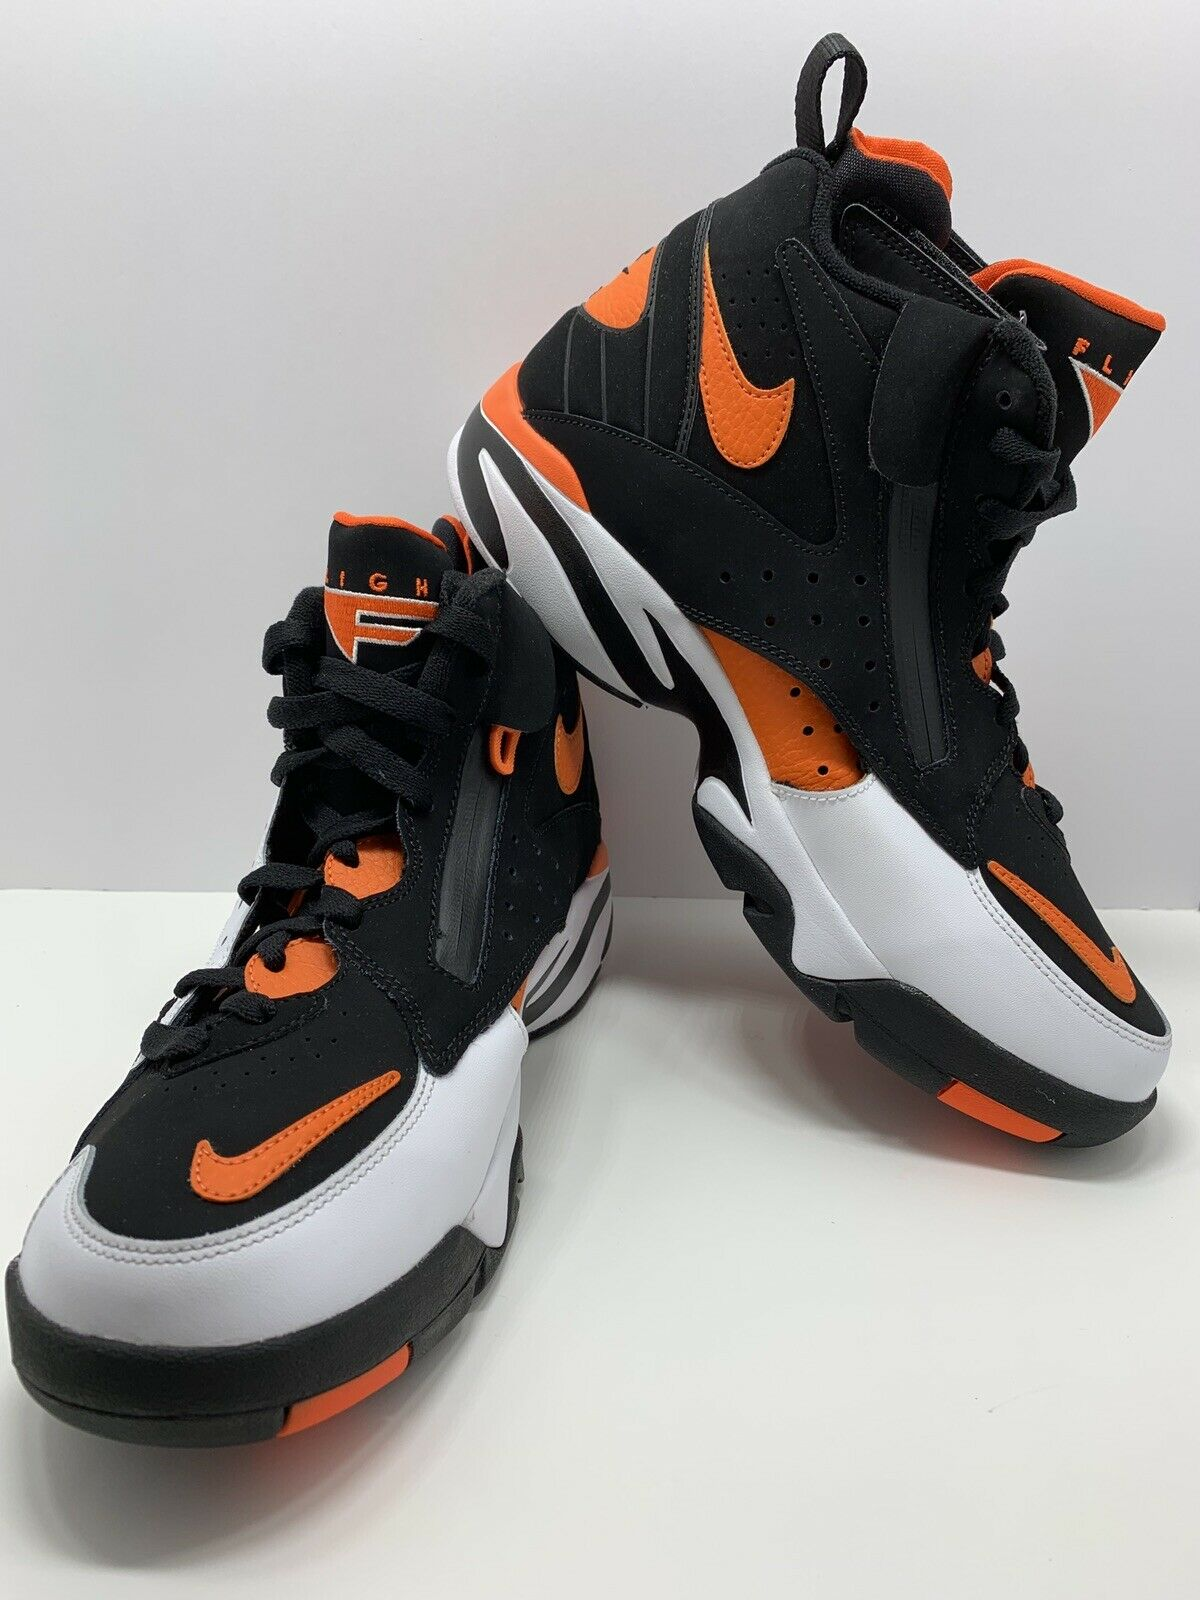 Nike Air Maestro II  LTD White Rush orange Black AH8511-101 size 11